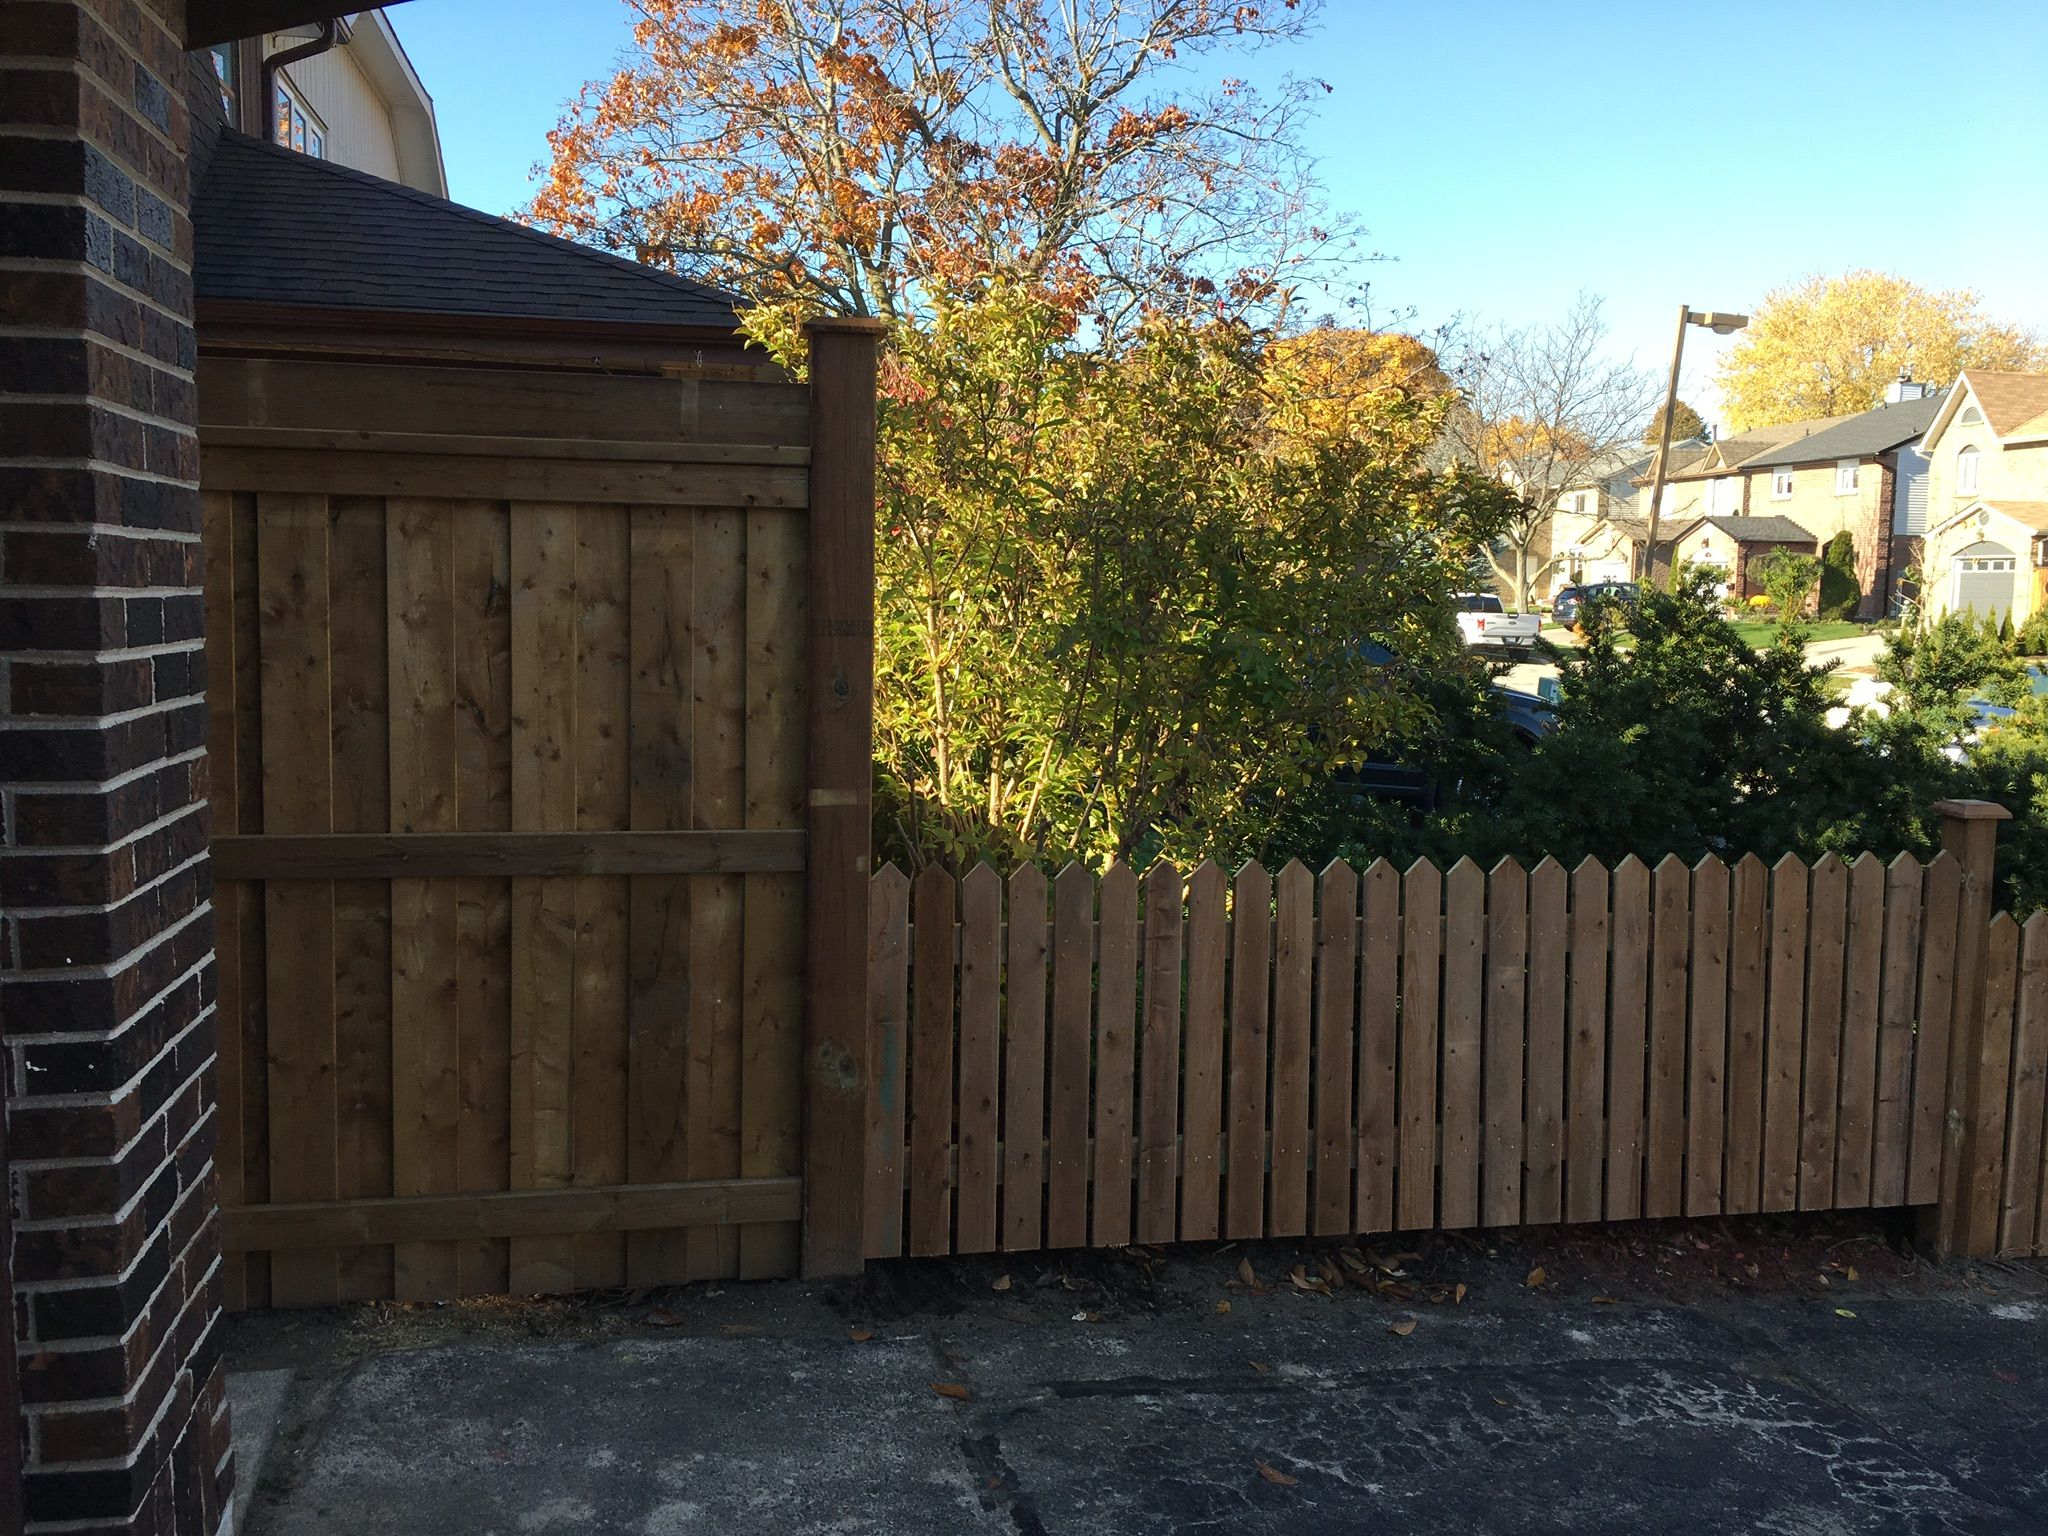 Fence for a private house - the choice of material, features of the fence